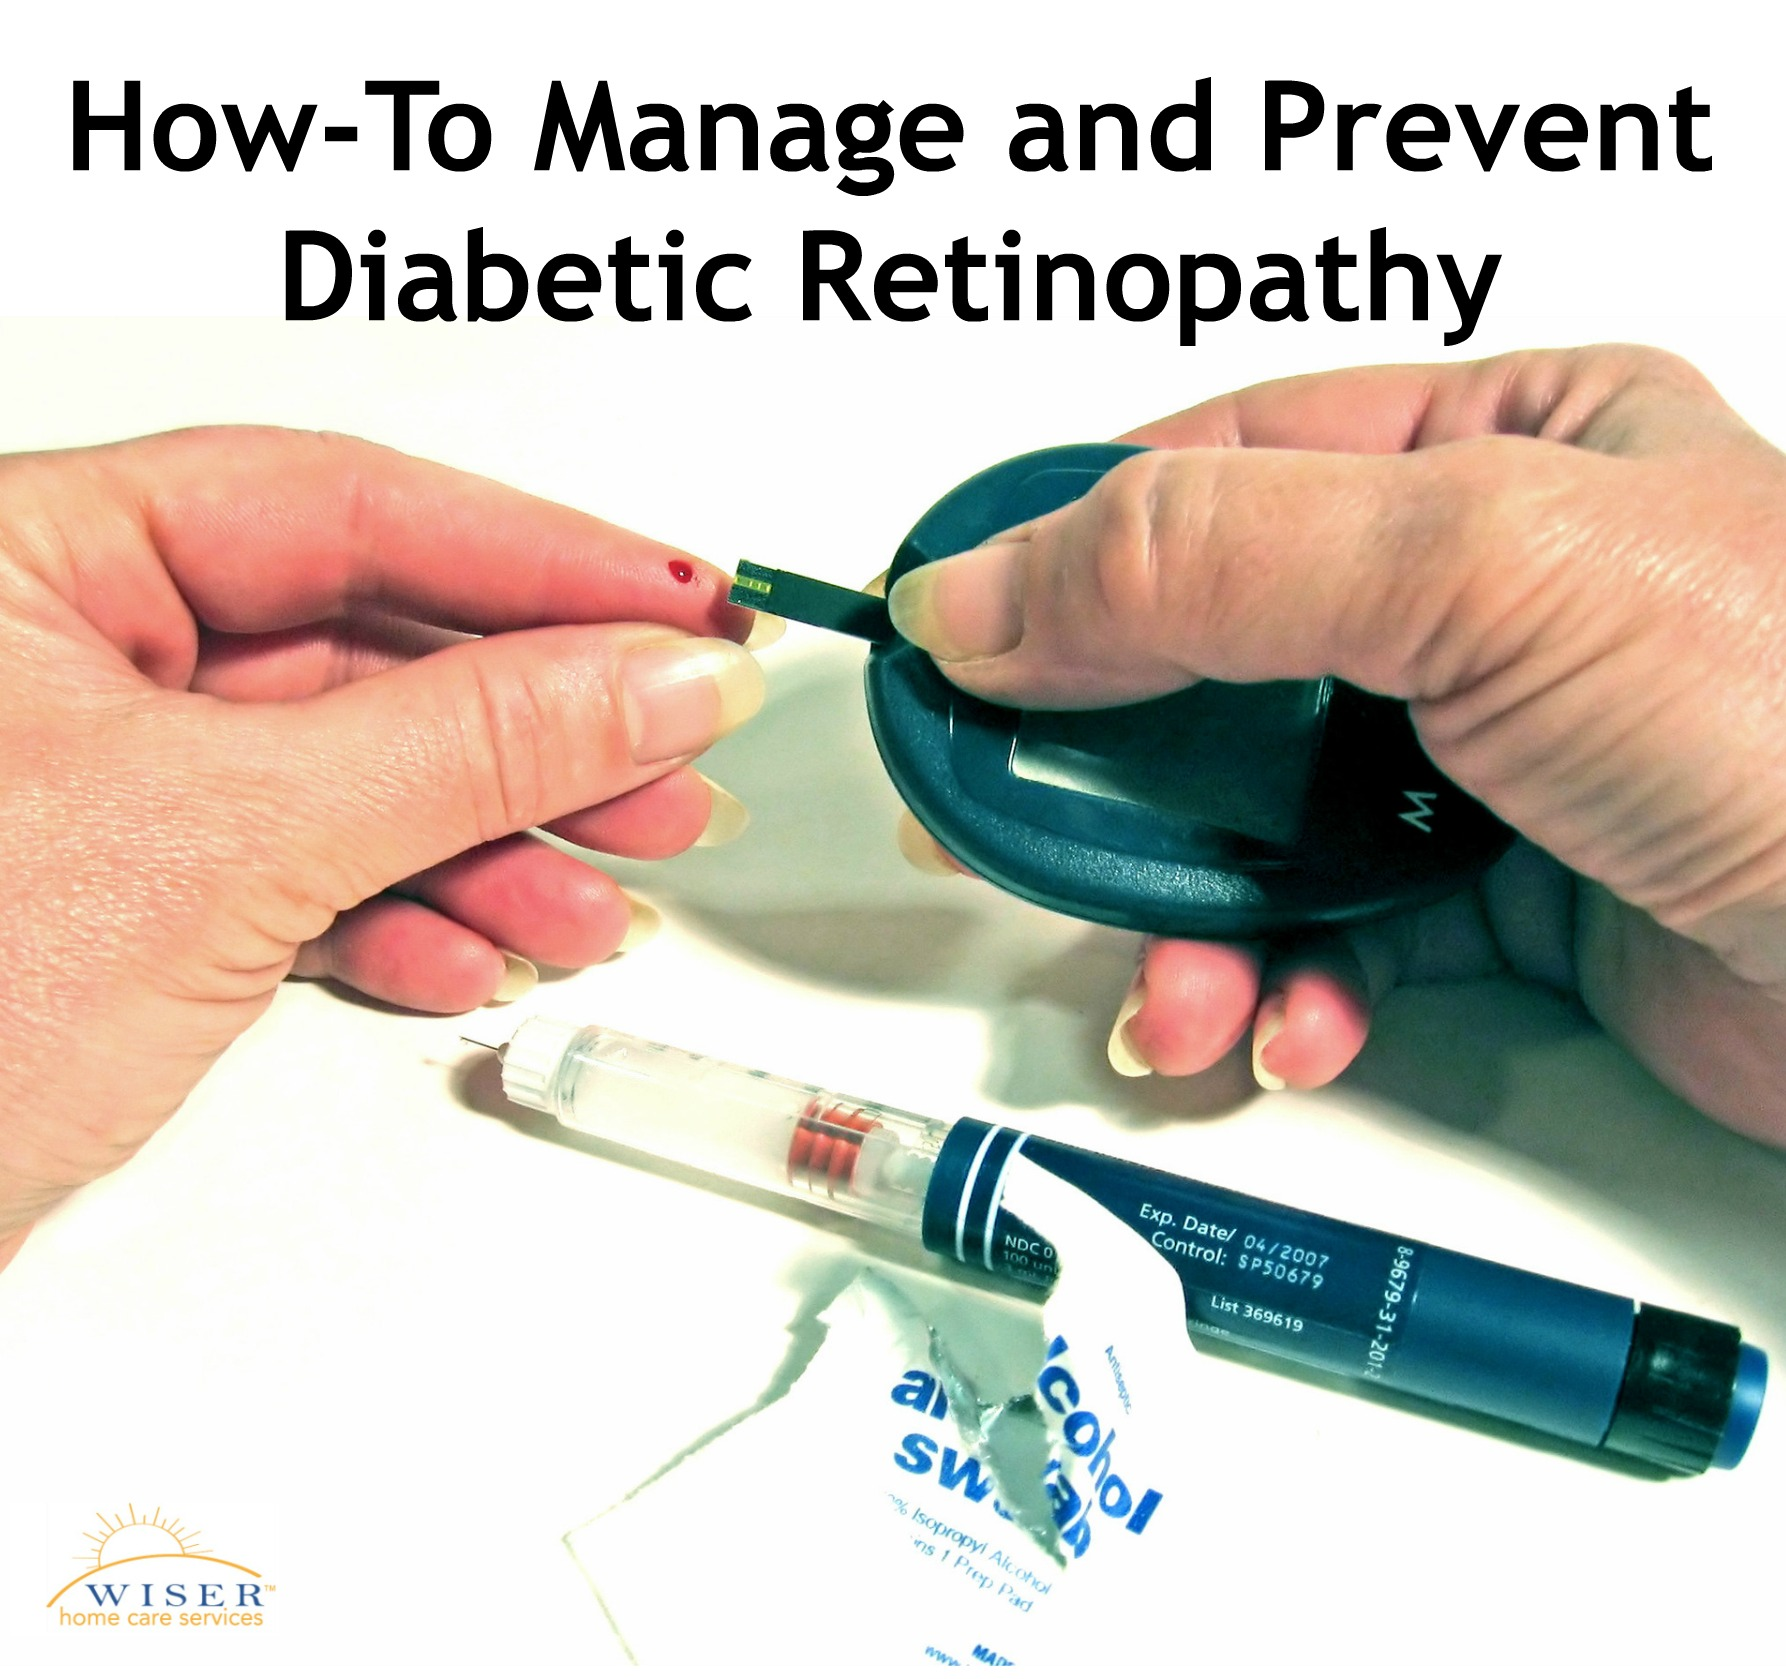 Diabetic Retinopathy(DR) is the leading cause of blindness worldwide. Once you have it, there is no getting rid of it. Learn how to manage DR here.